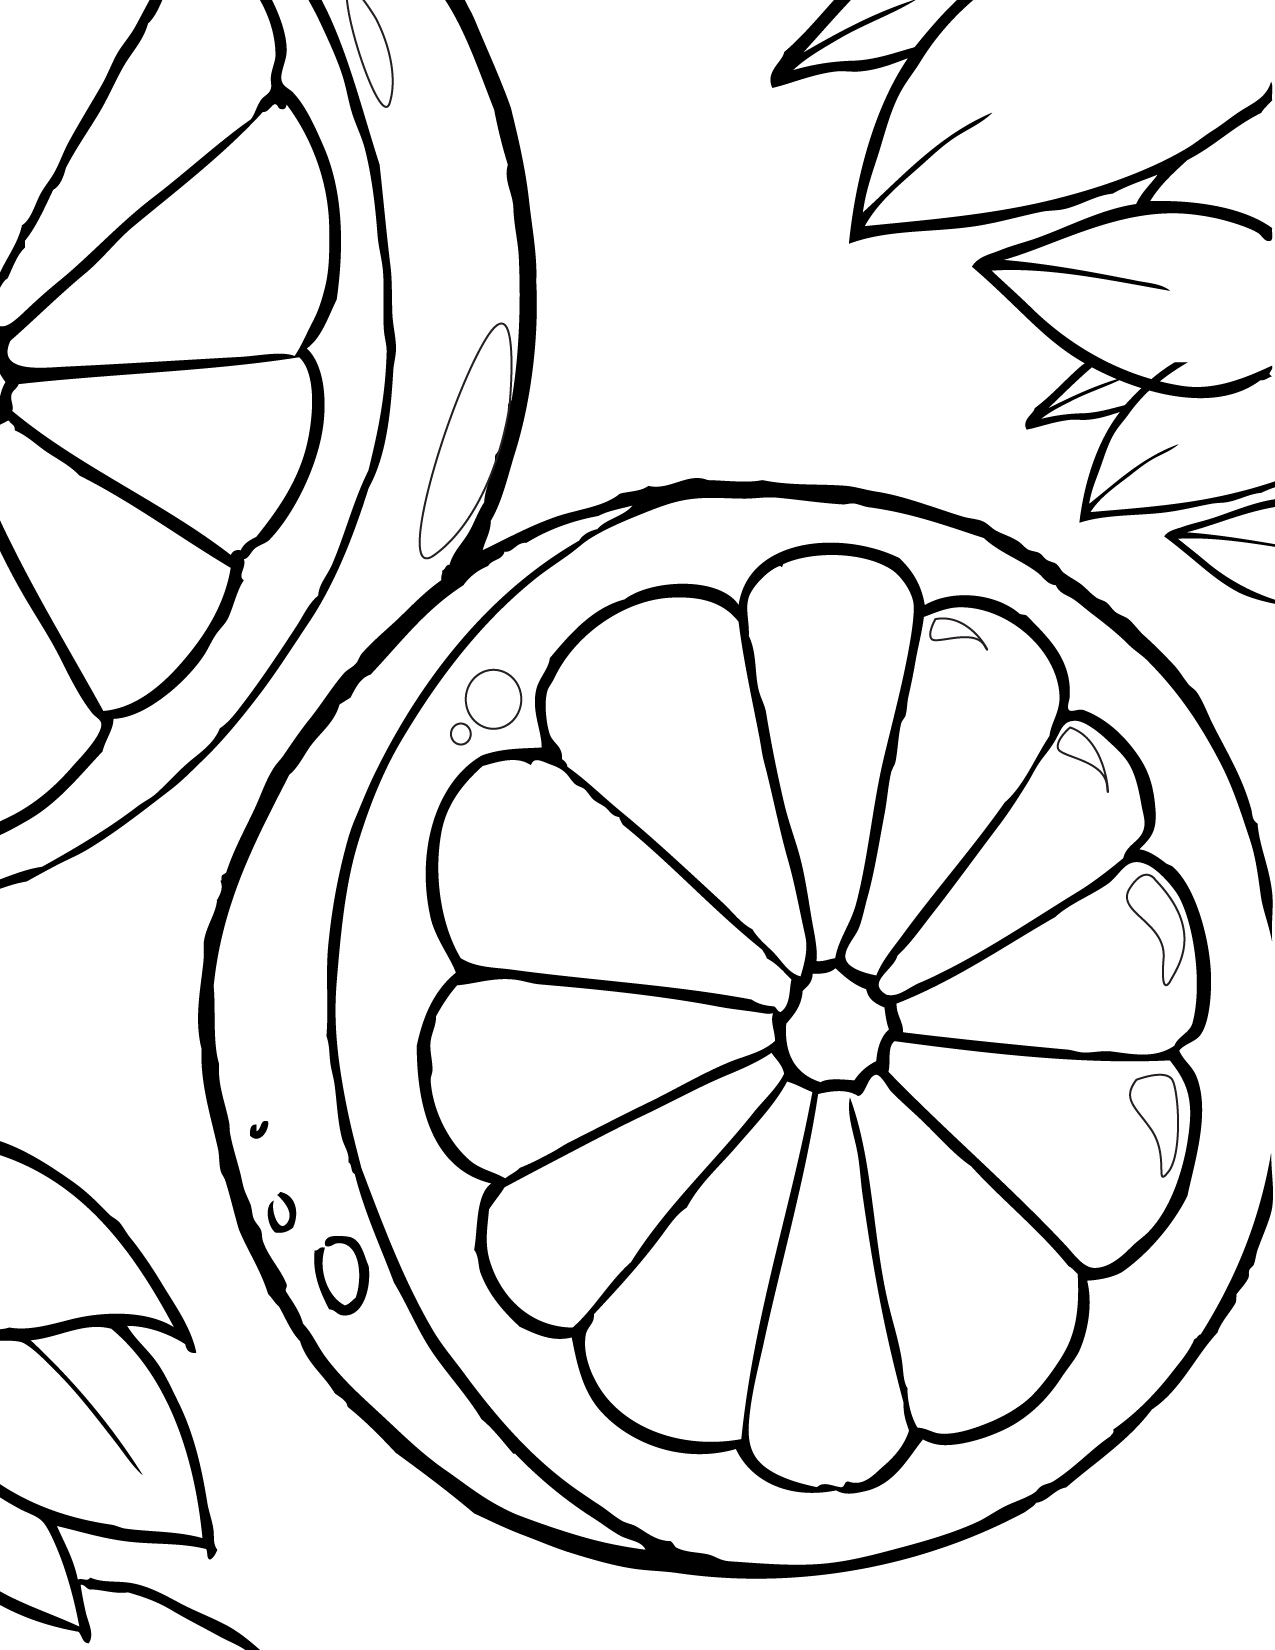 the color orange coloring pages - photo#13